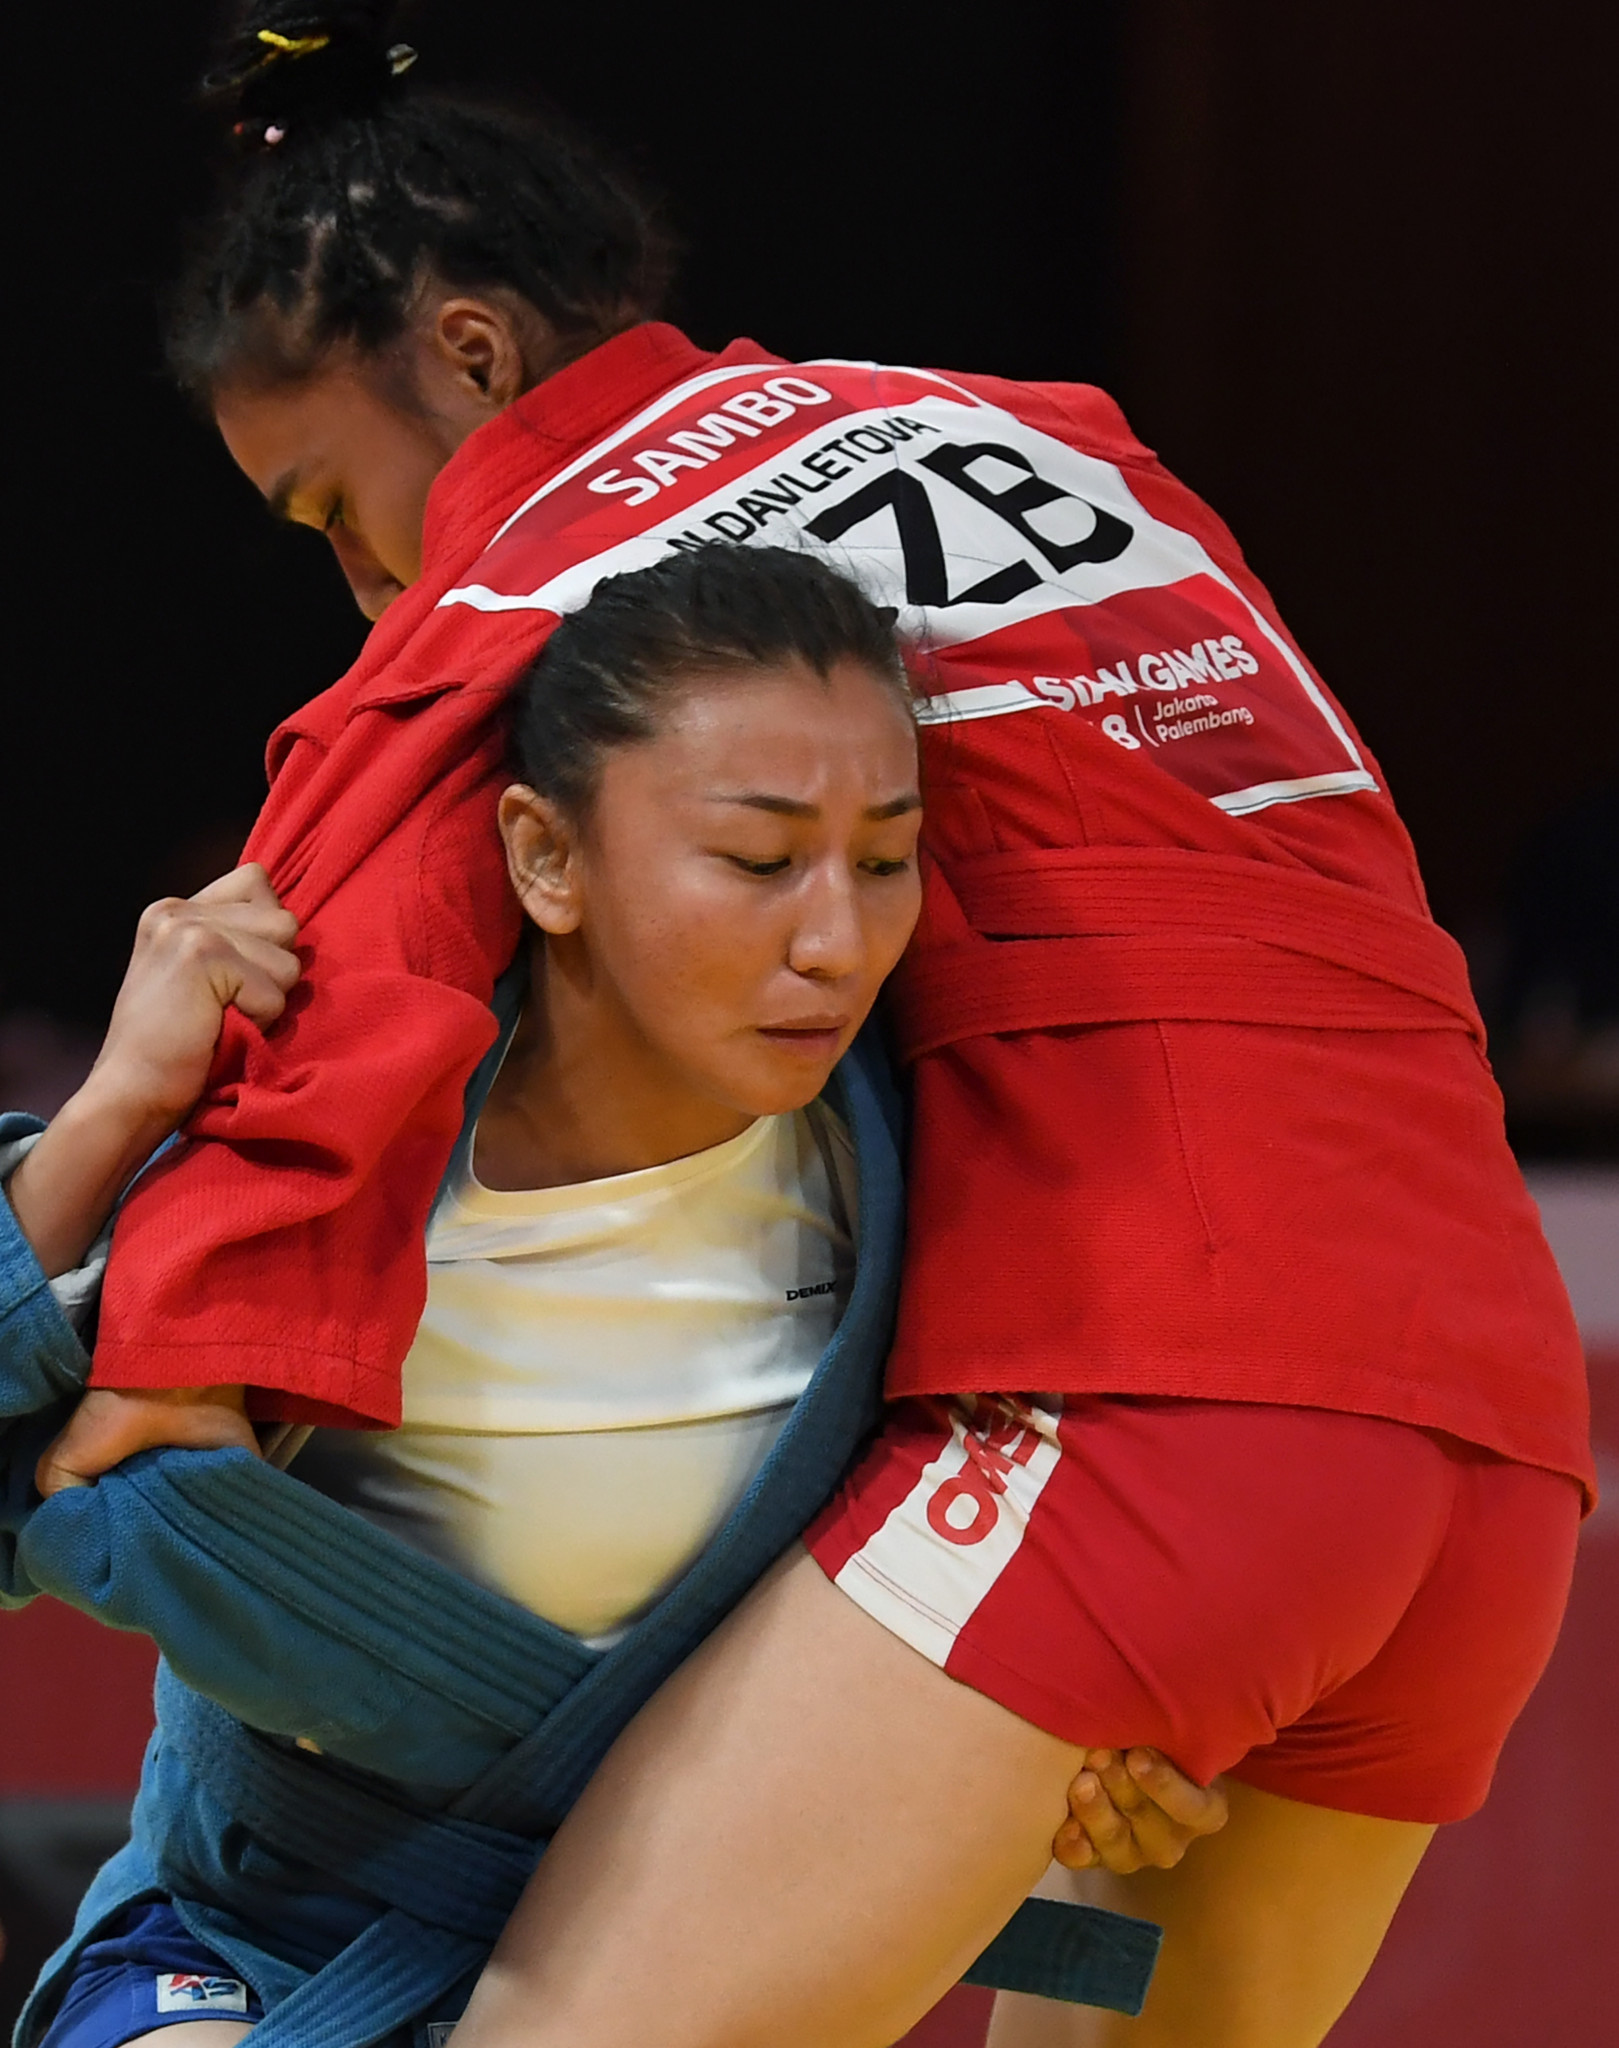 Tashkent will hold the World Sambo Championships for the third time  ©Getty Images